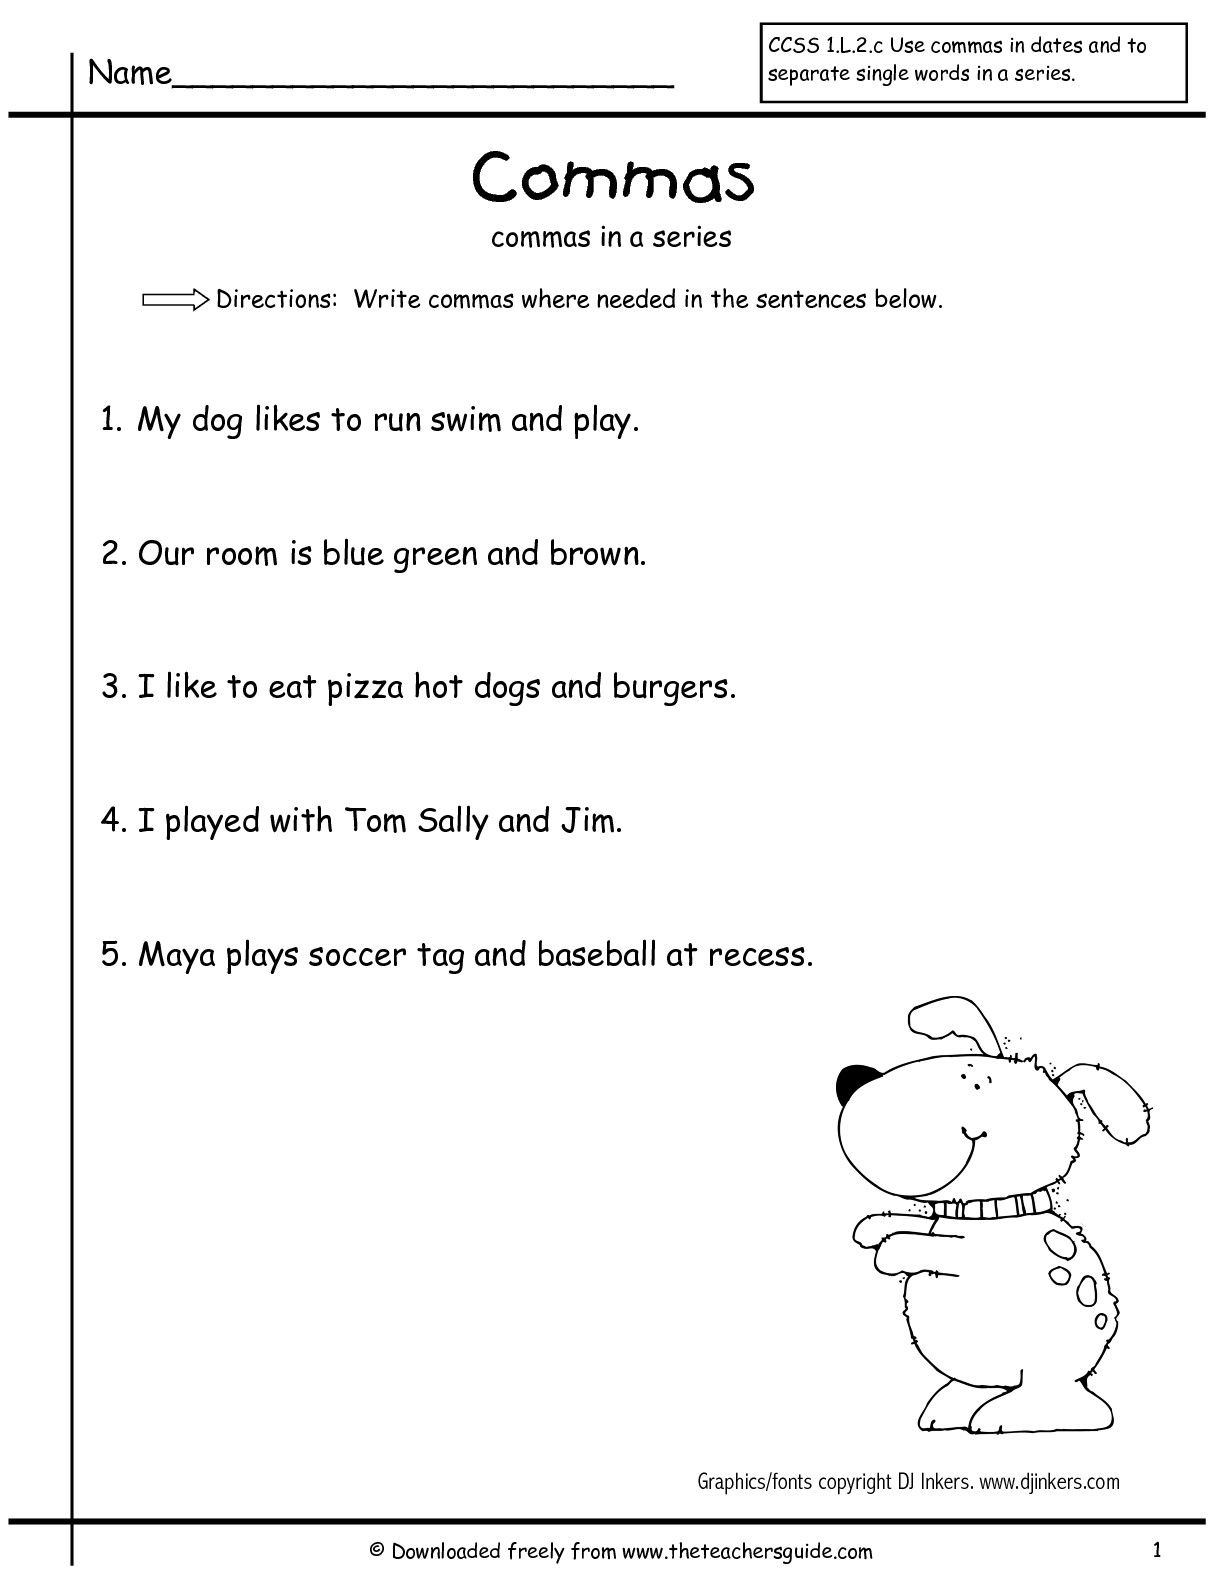 Worksheets Grammar Worksheets 1st Grade commas in a series grammar pinterest worksheets punctuation first grade comma